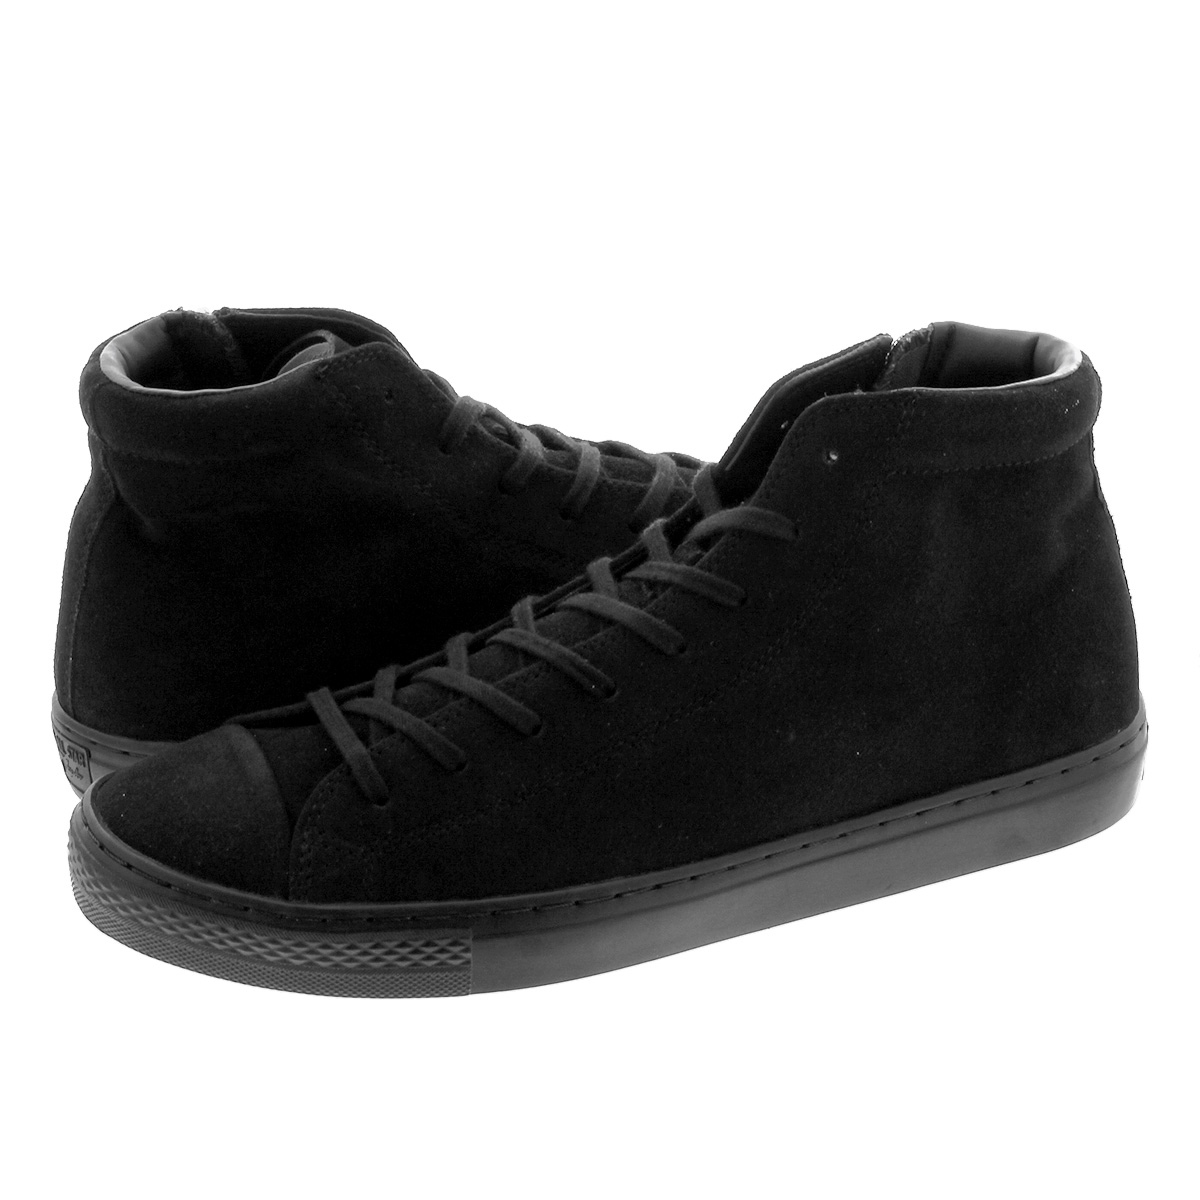 CONVERSE ALL STAR COUPE SUEDE Z MID コンバース オールスター クップ スエード Z ミッド BLACK 31301741